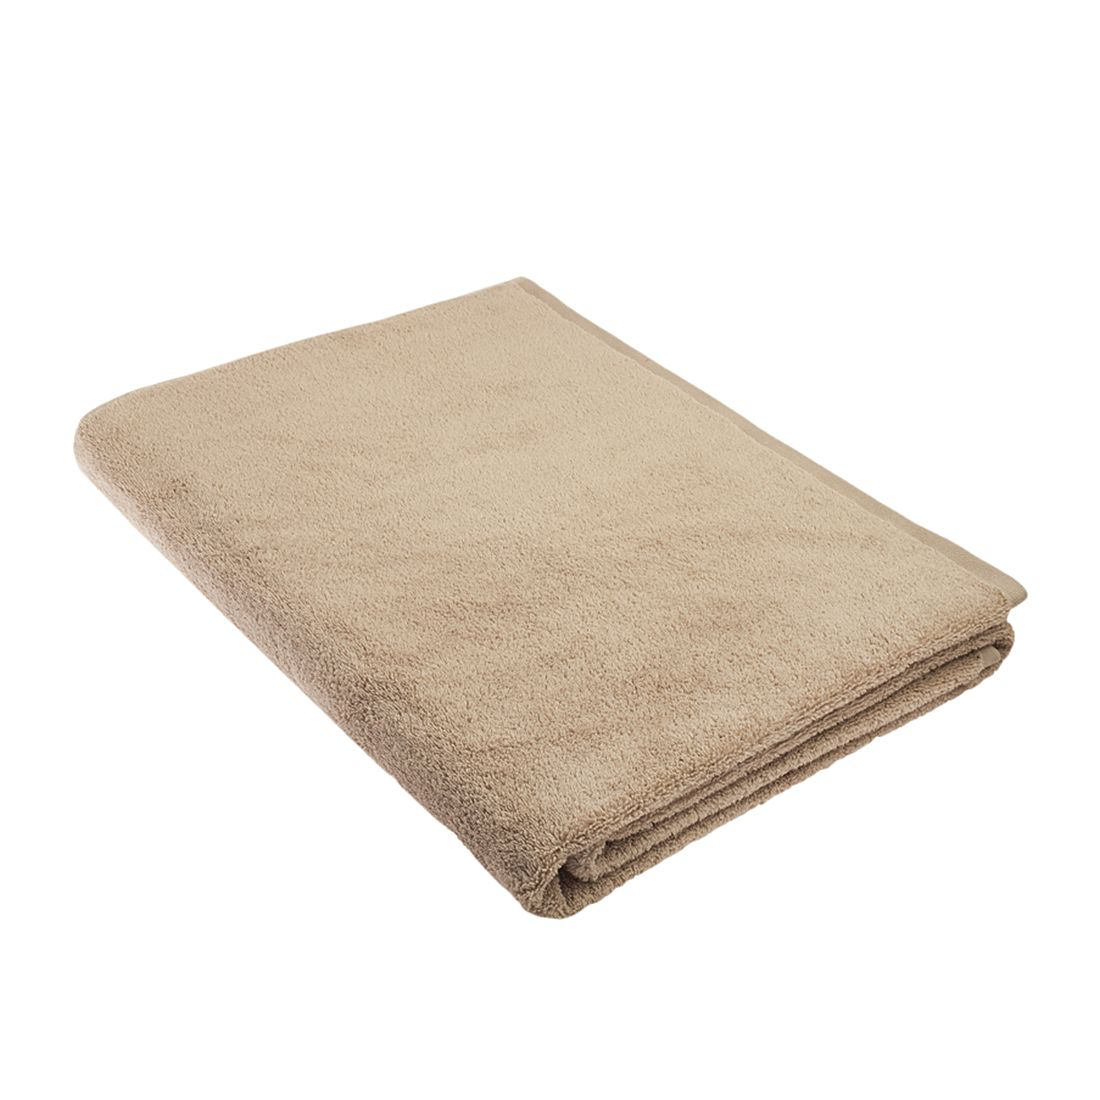 Home 24 - Serviette de sauna pure - 100 % coton - naturel, stilana